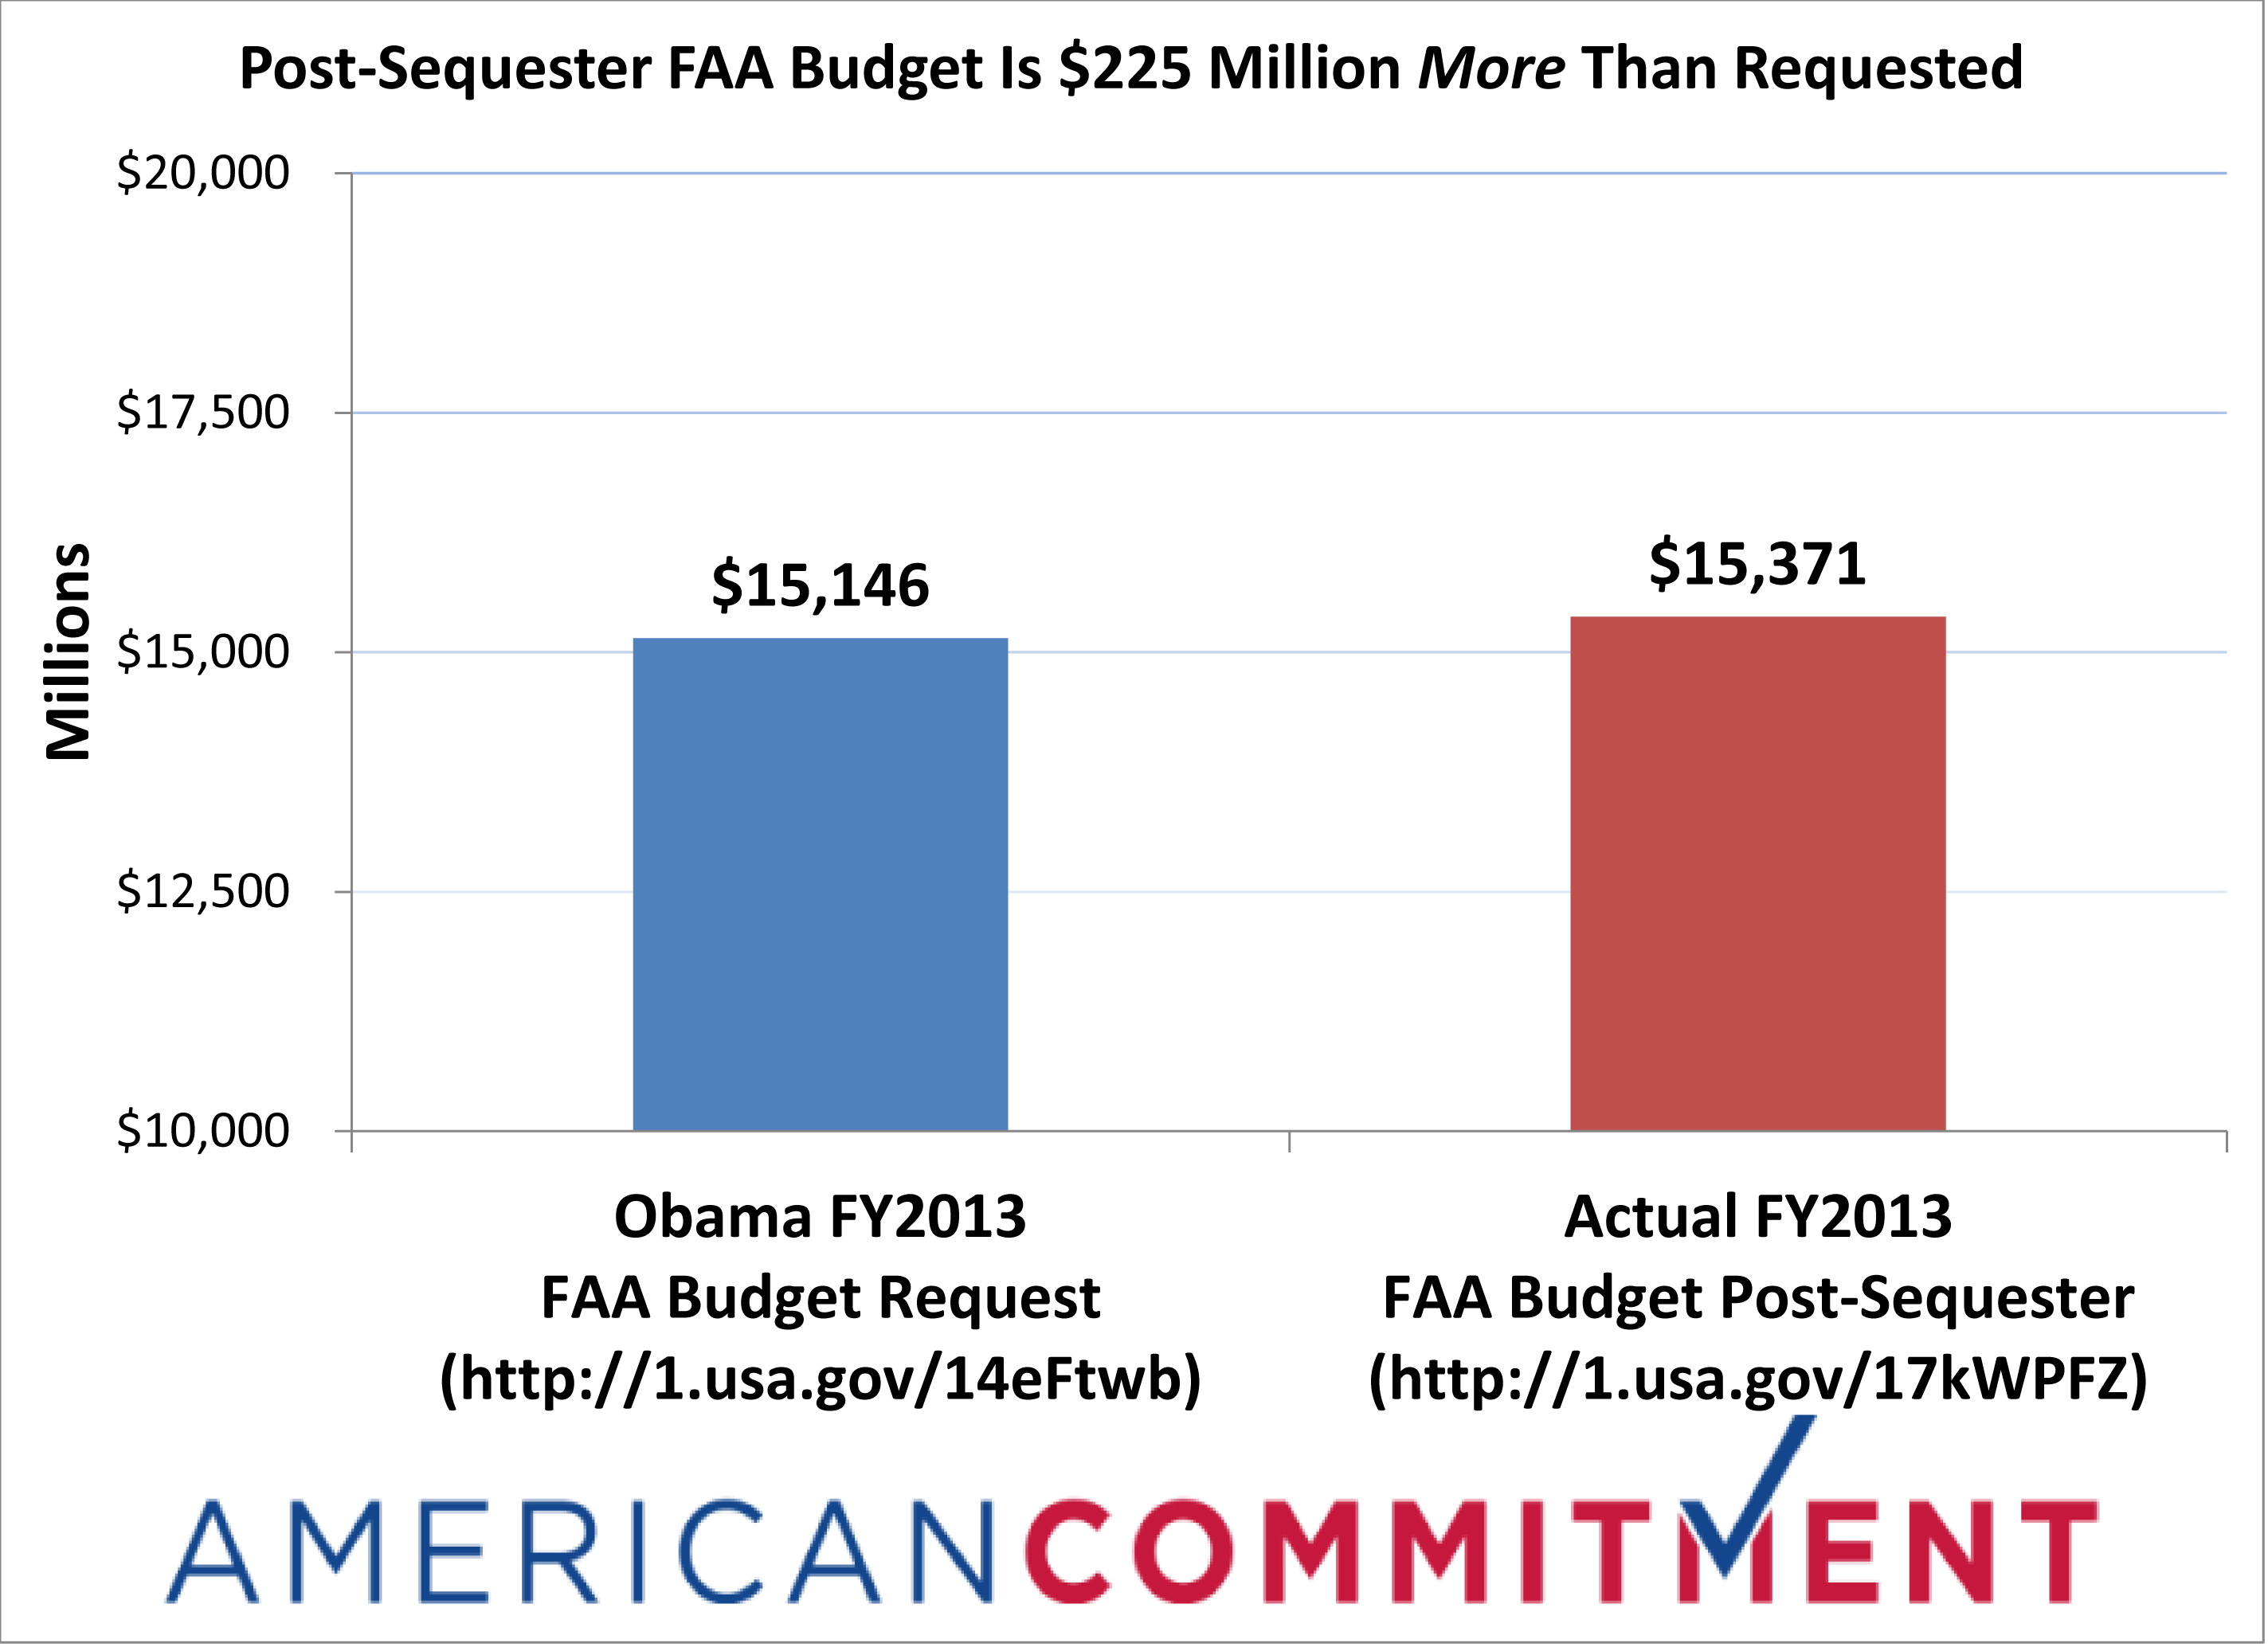 Post-Sequester FAA Budget Is $225 Million More Than Requested